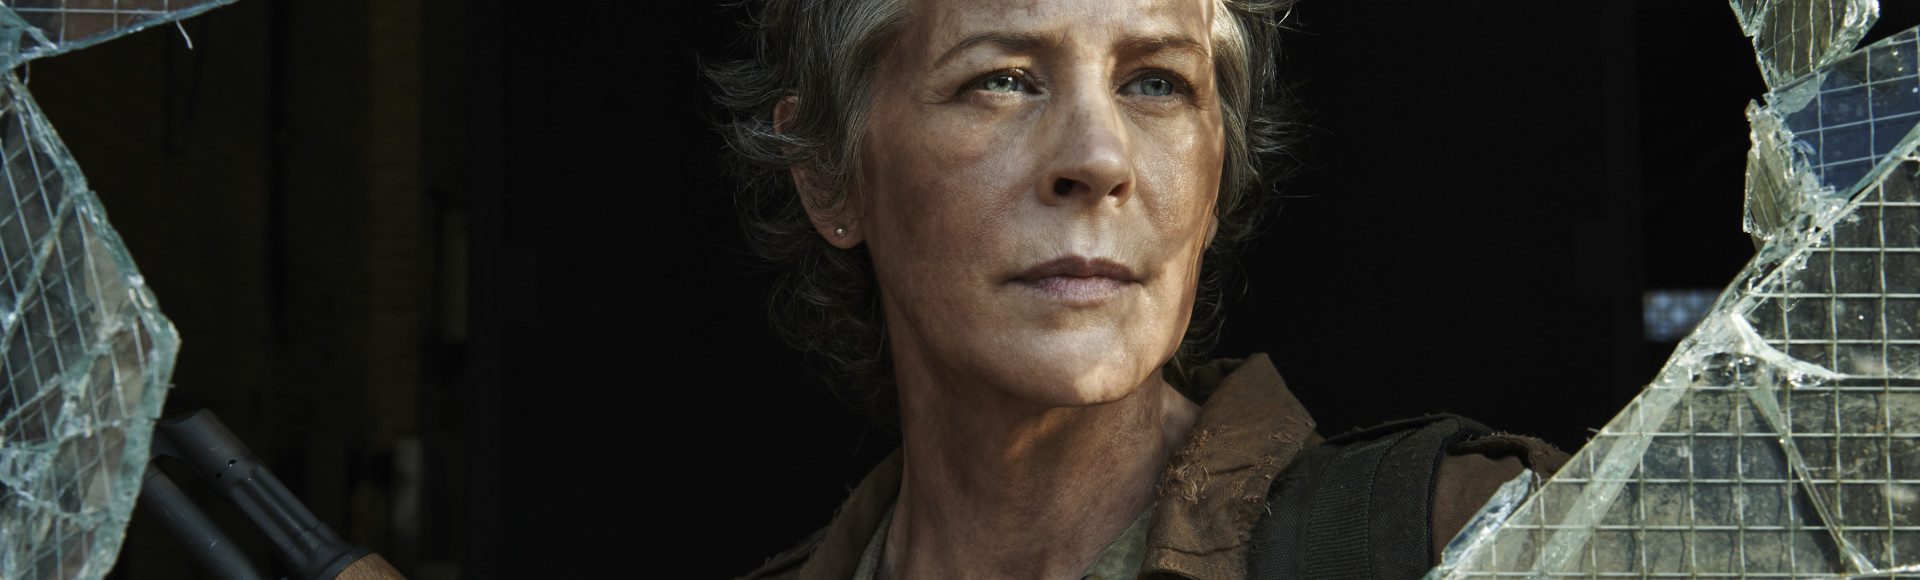 The Walking Dead, Carol & ObamaCare